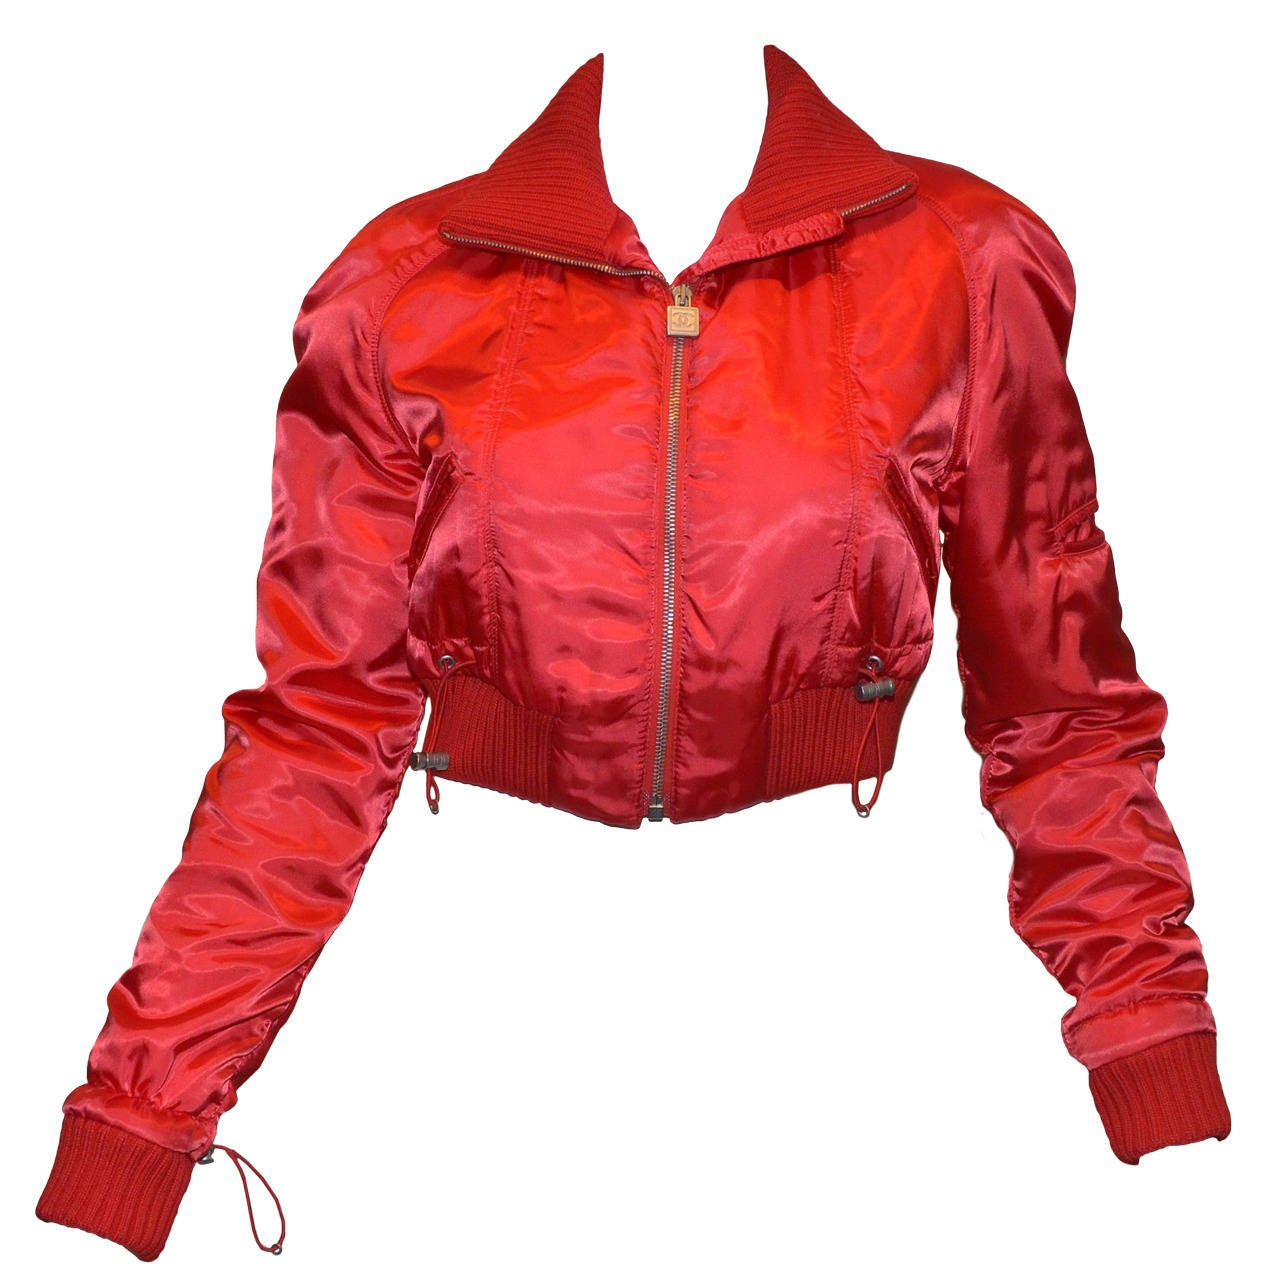 '03 A Chanel Collection Red Satin Crop Ribbed Bomber Jacket